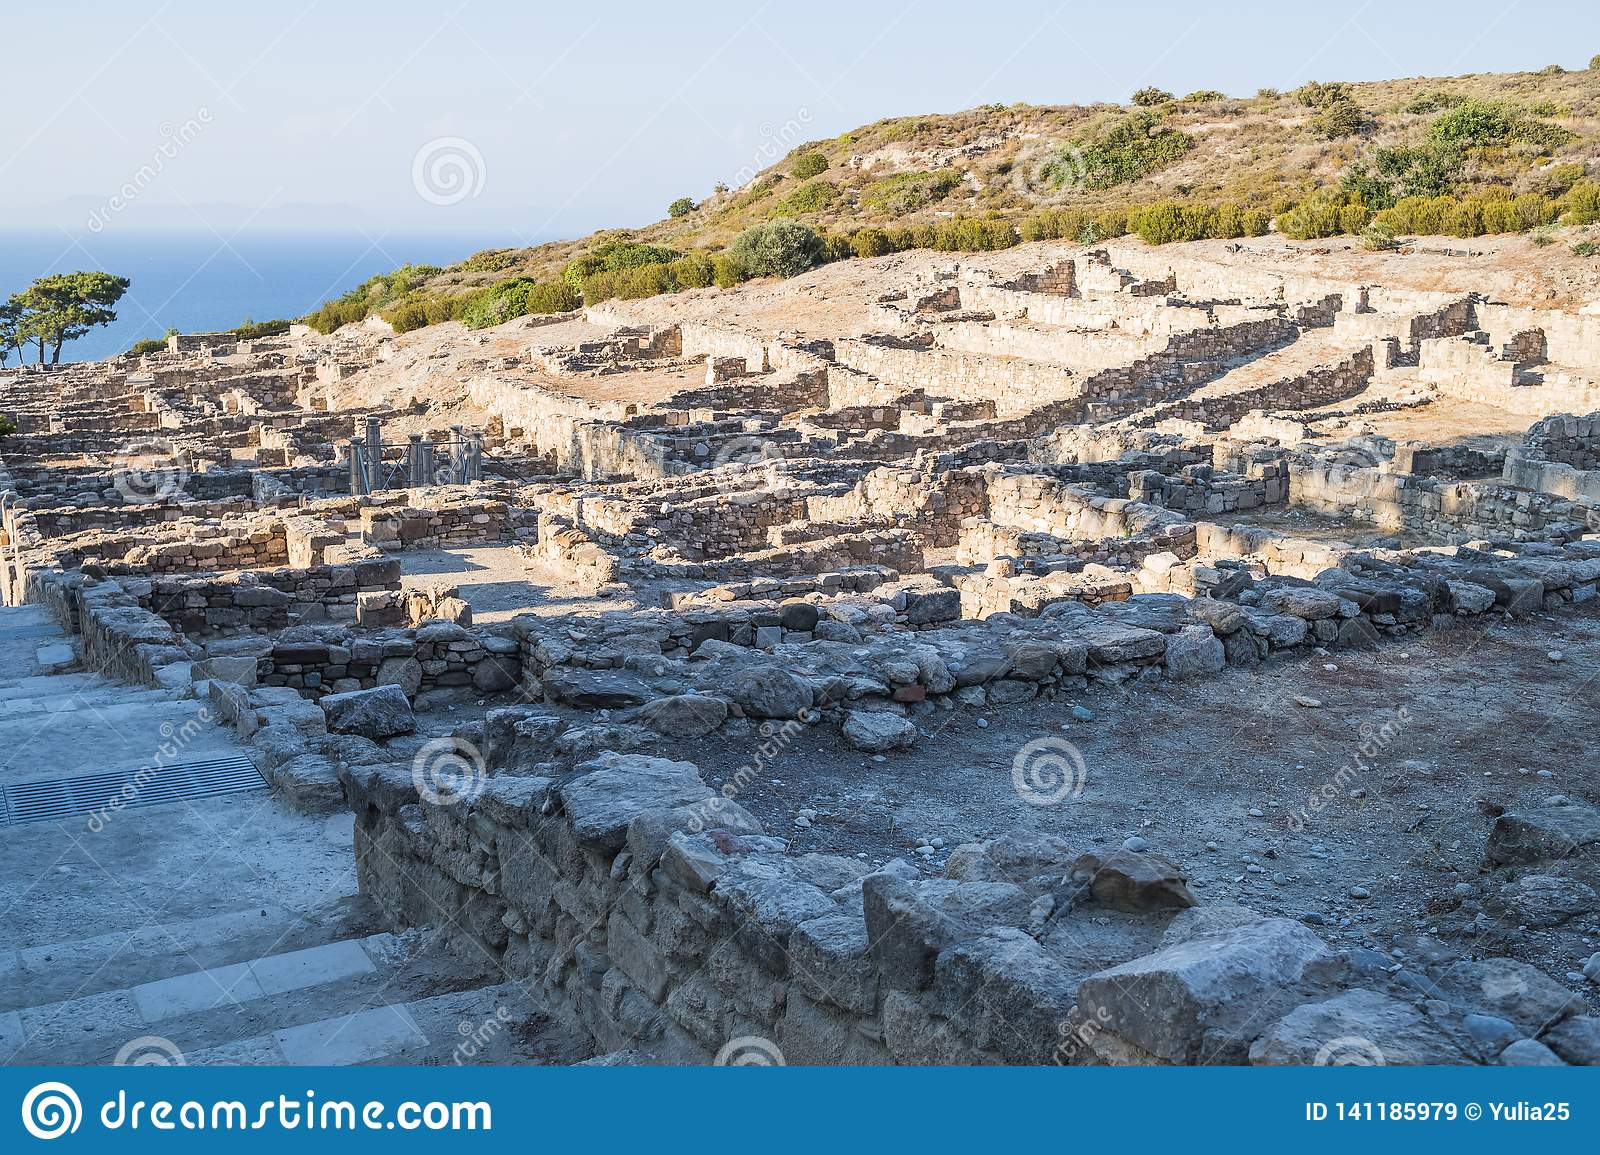 Columns of doric temple in city of Kamiros.Hellenistic houses in ancient city of Kamiros ,island of Rhodes, Greece